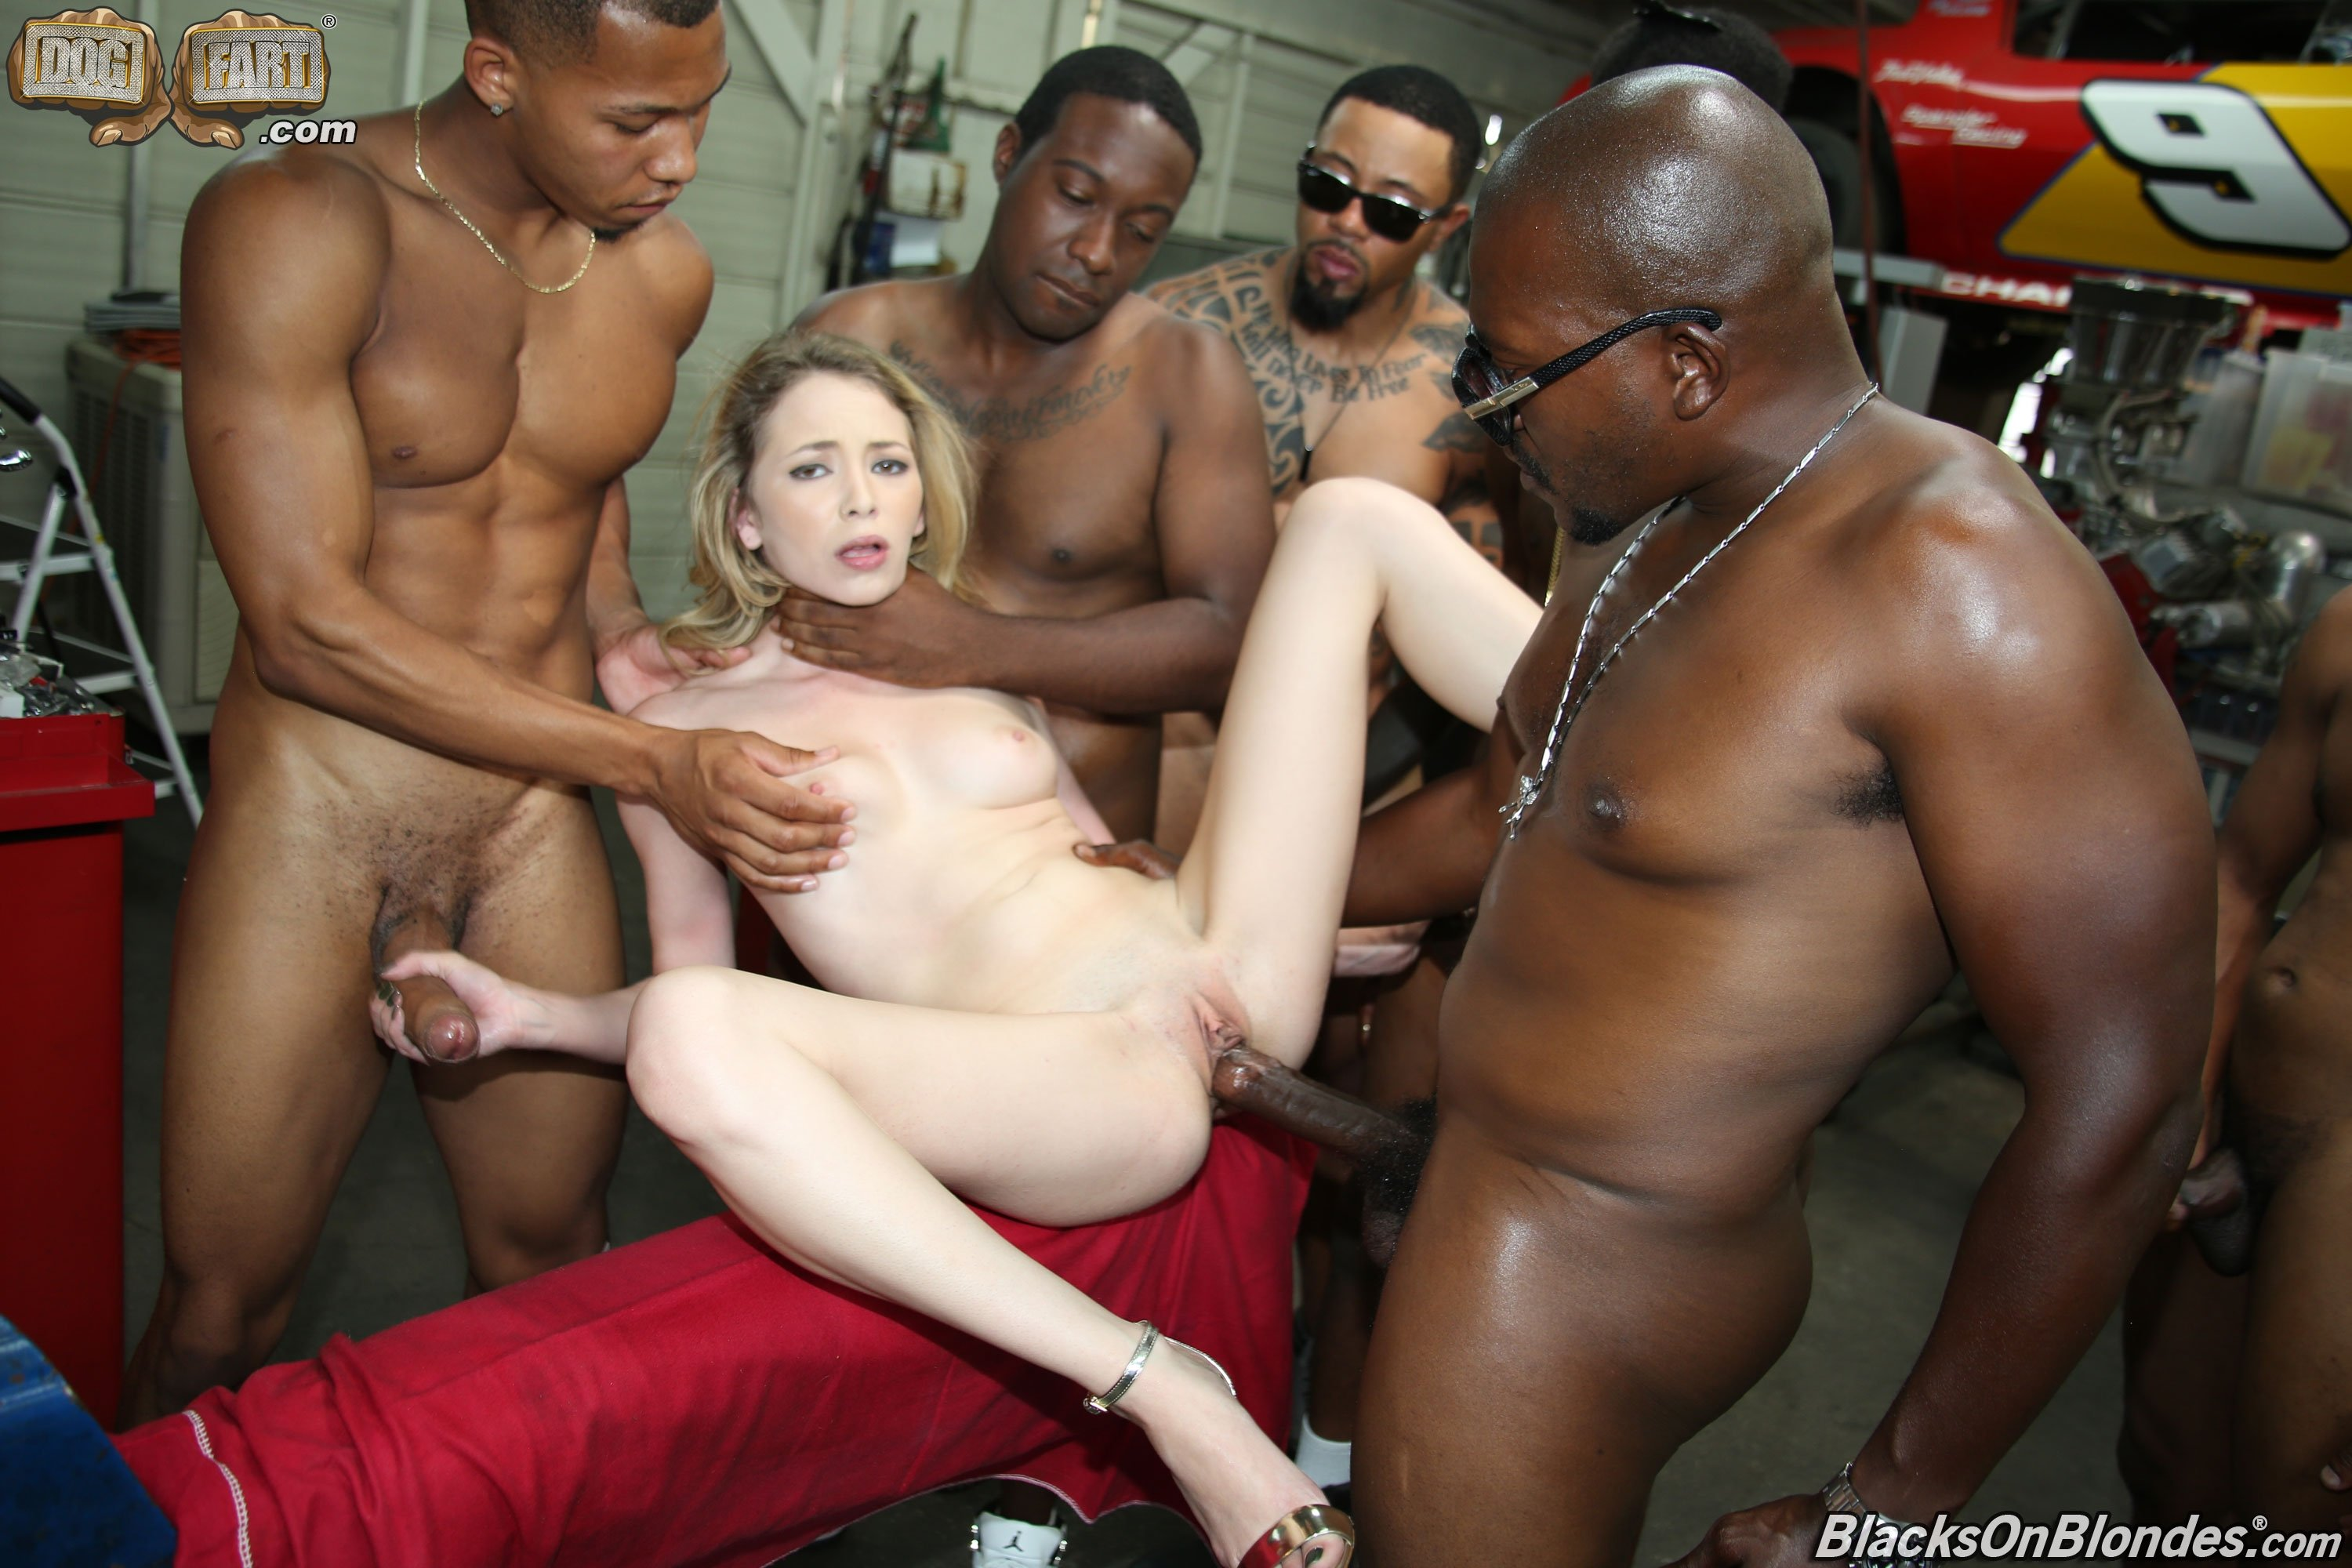 white-girl-gang-banged-picture-galleries-xxx-gang-bang